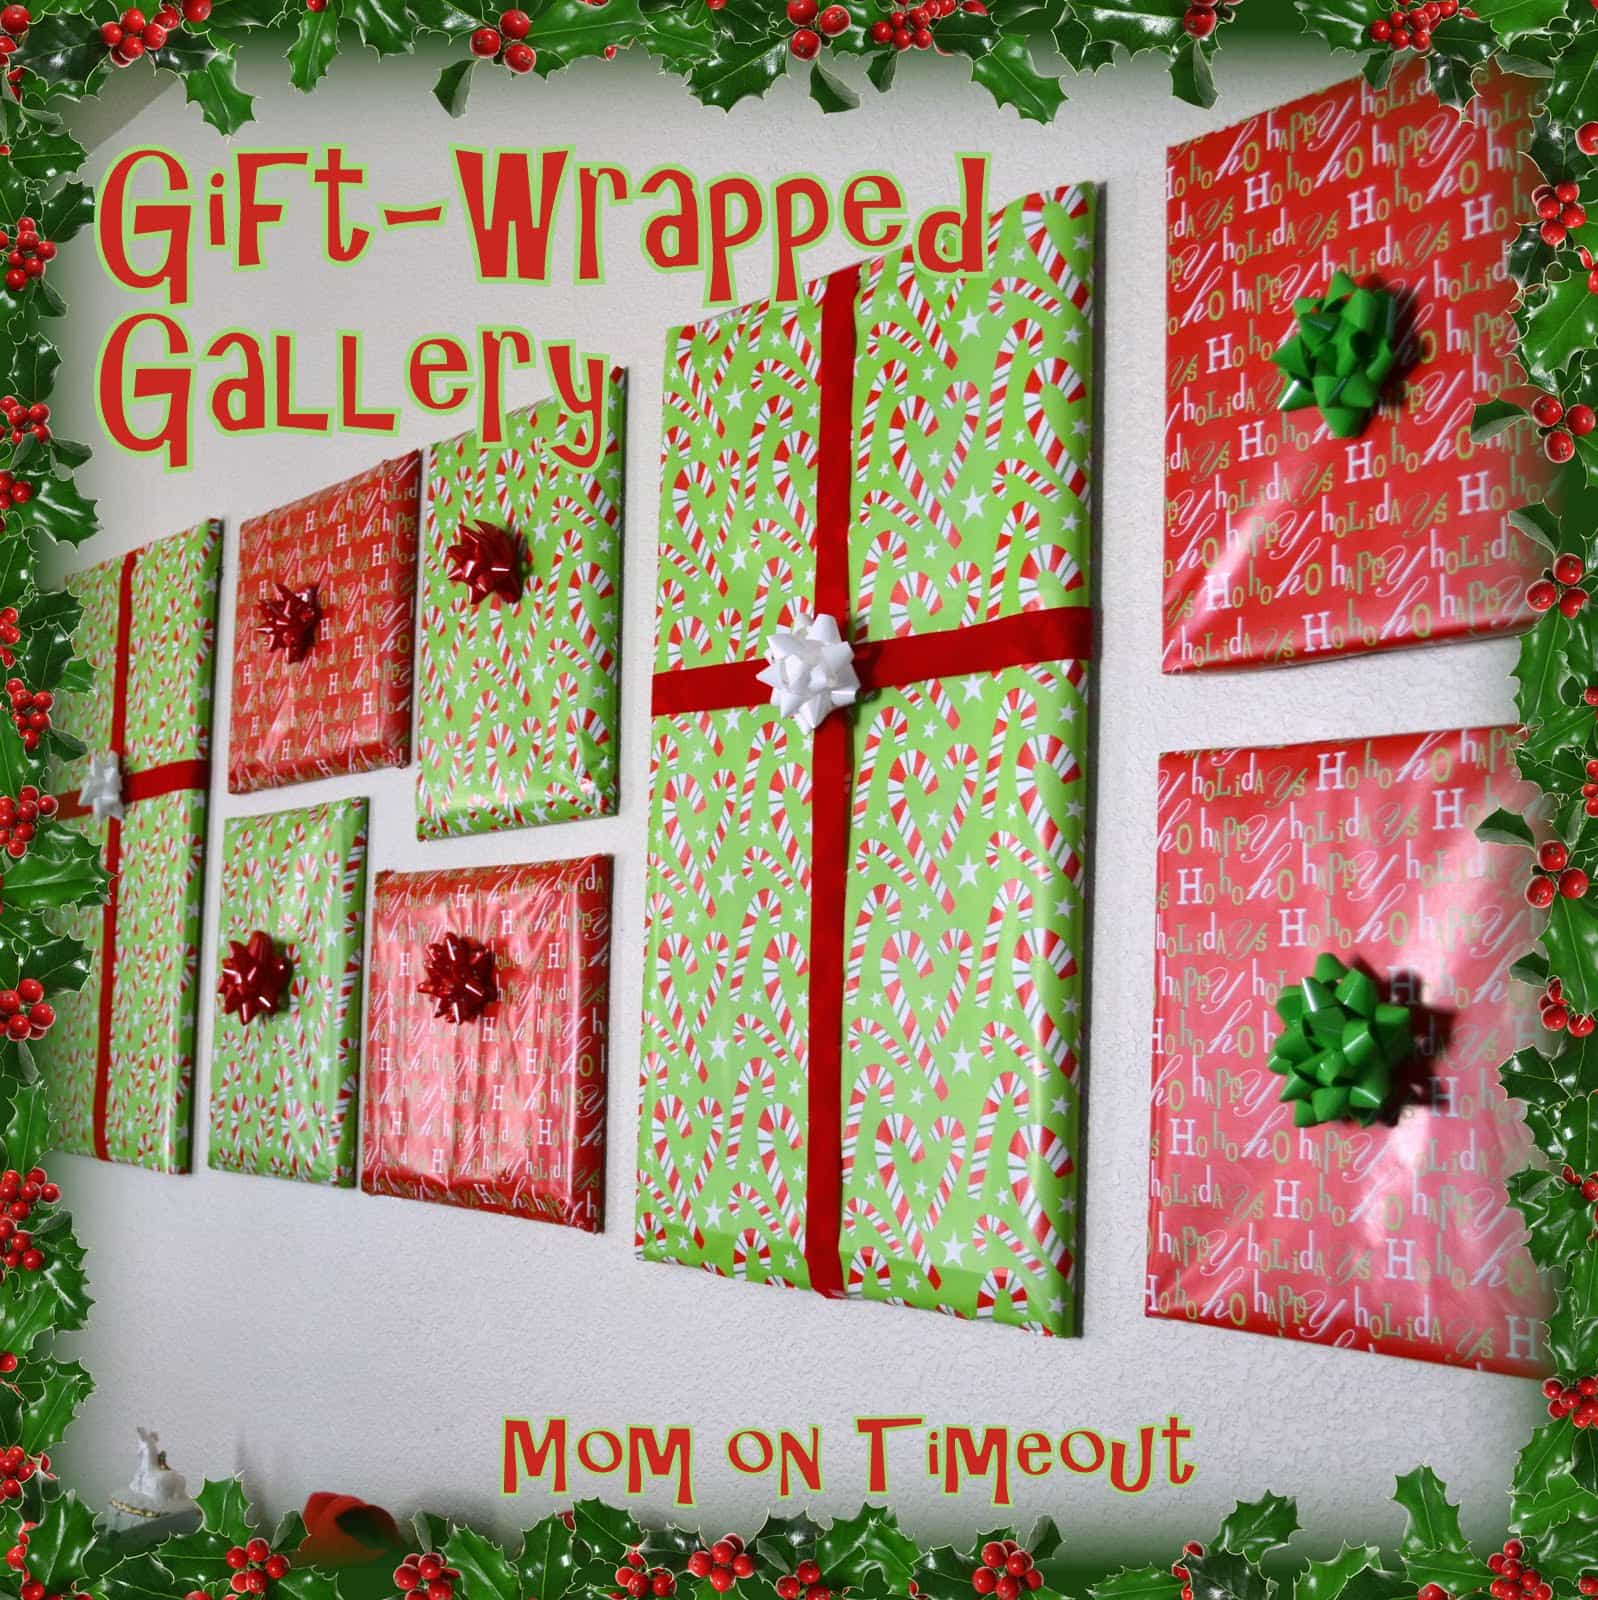 Gift-Wrapped Gallery